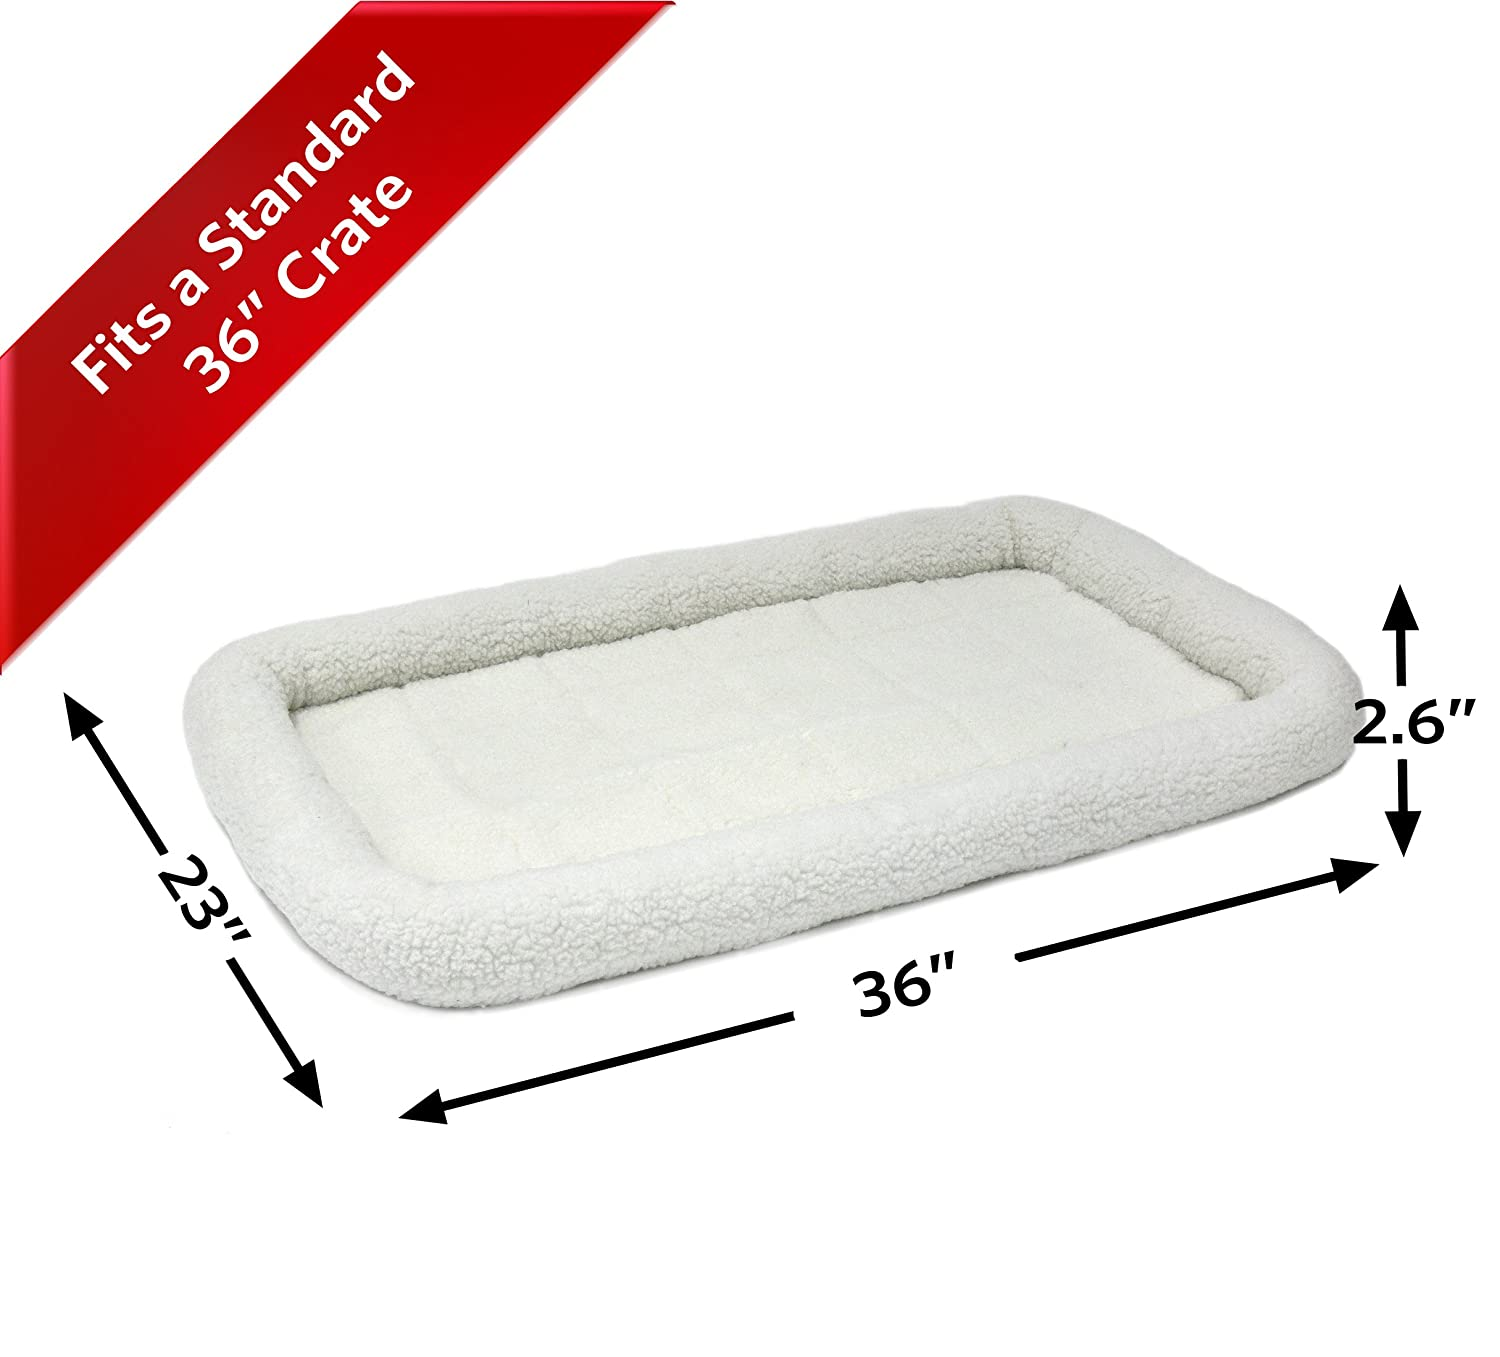 Easy Maintenance Machine Wash /& Dry 30L- Inch Cinnamon Dog Bed or Cat Bed w//Comfortable Bolster Ideal for Medium Dog Breeds /& Fits a 30-Inch Dog Crate 1-Year Warranty